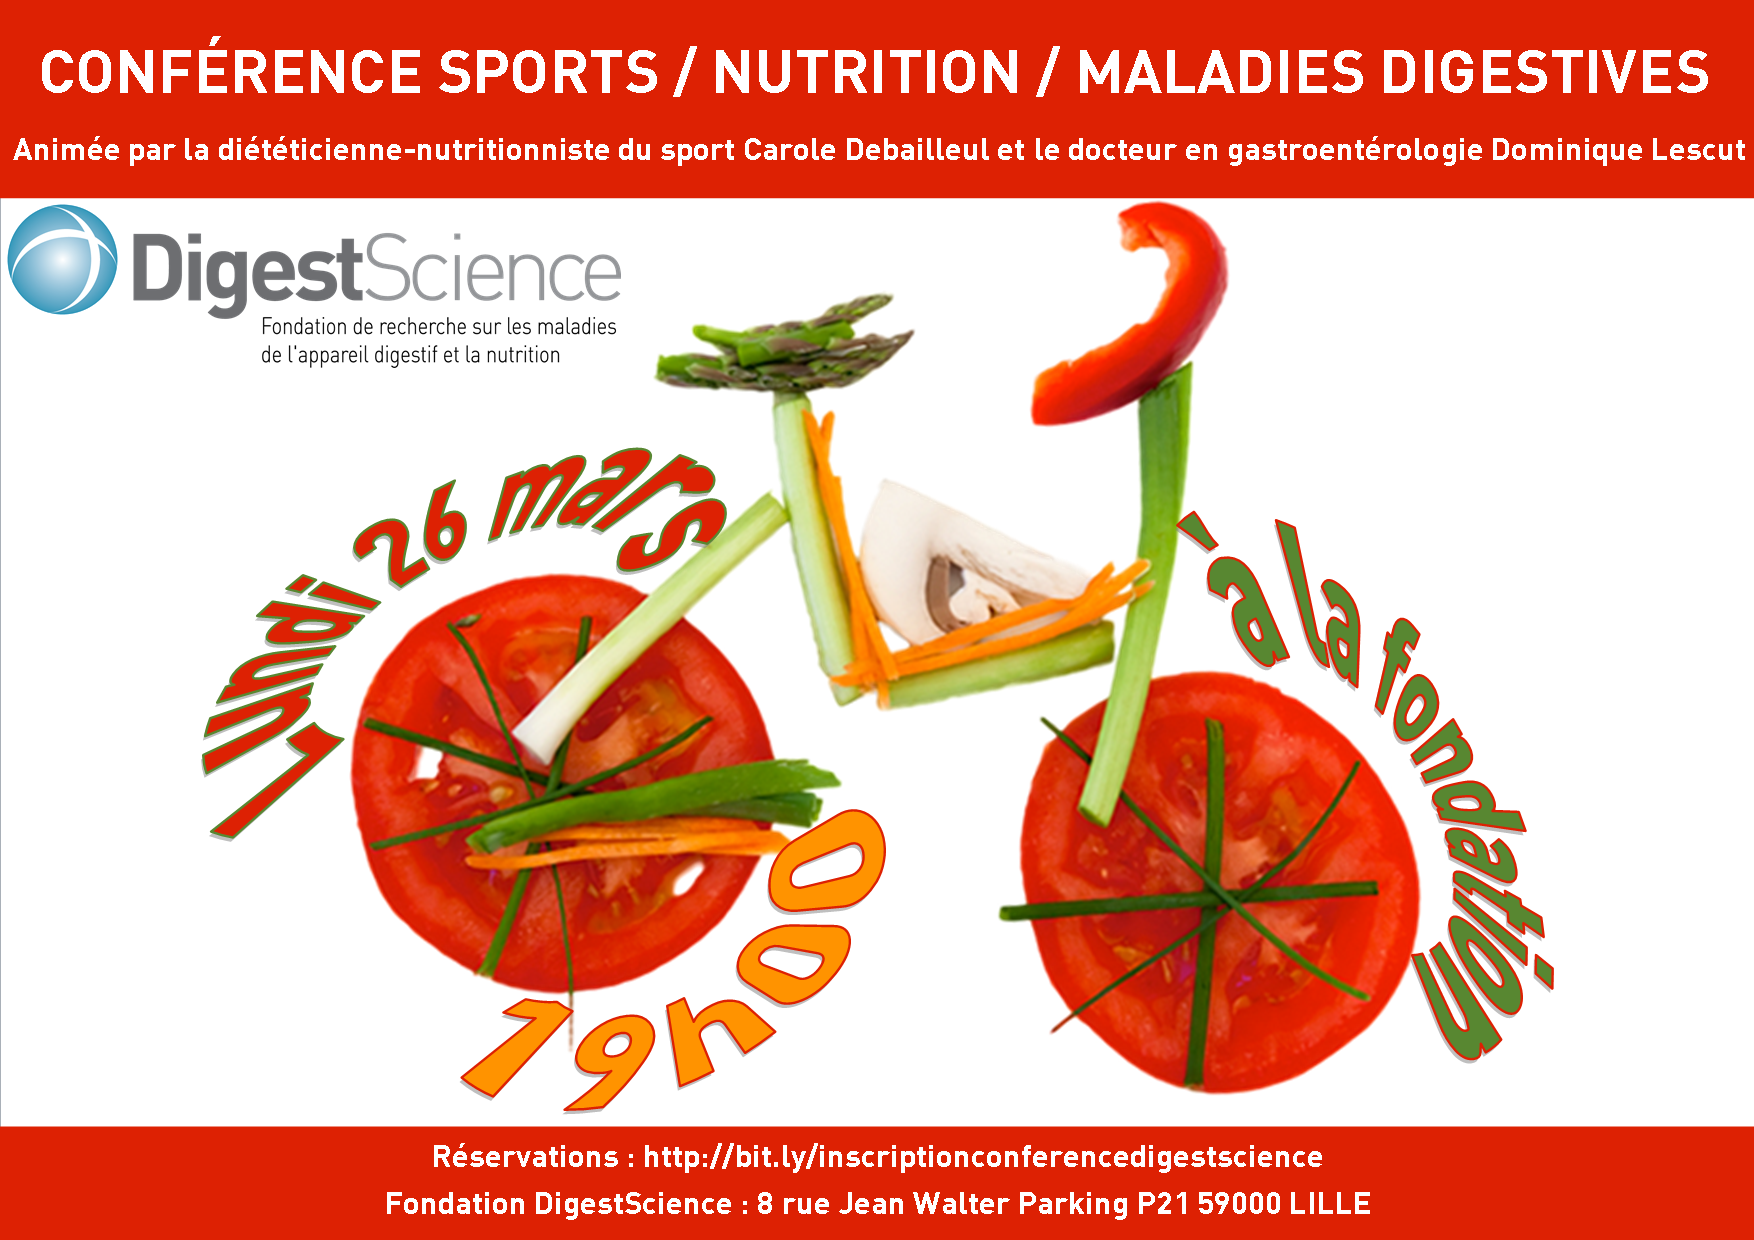 conference sports nutrition maladies digestives